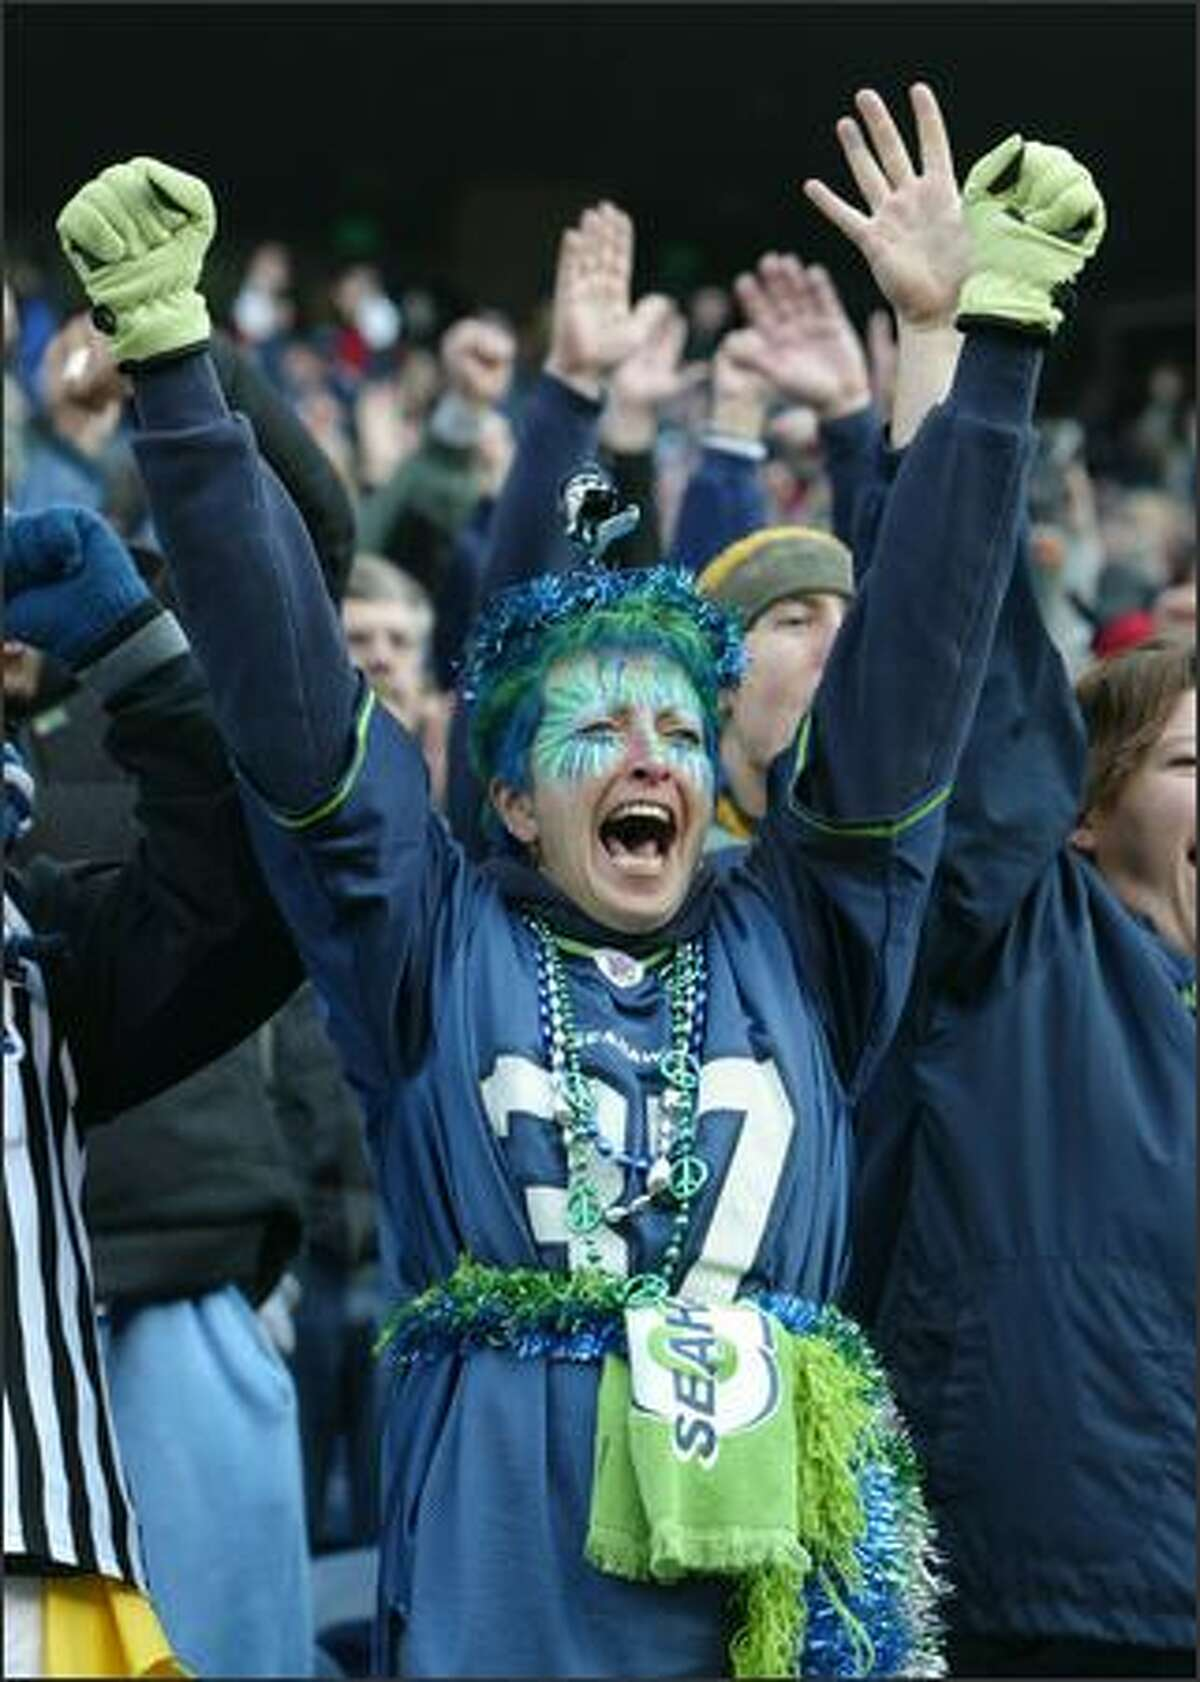 Margy Wick, who came all the way from Soap Lake in Eastern Washington to cheer for the Seahawks in Sunday's game against the San Francisco 49ers at Qwest Field, signals touchdown after a Seattle score in the first quarter.